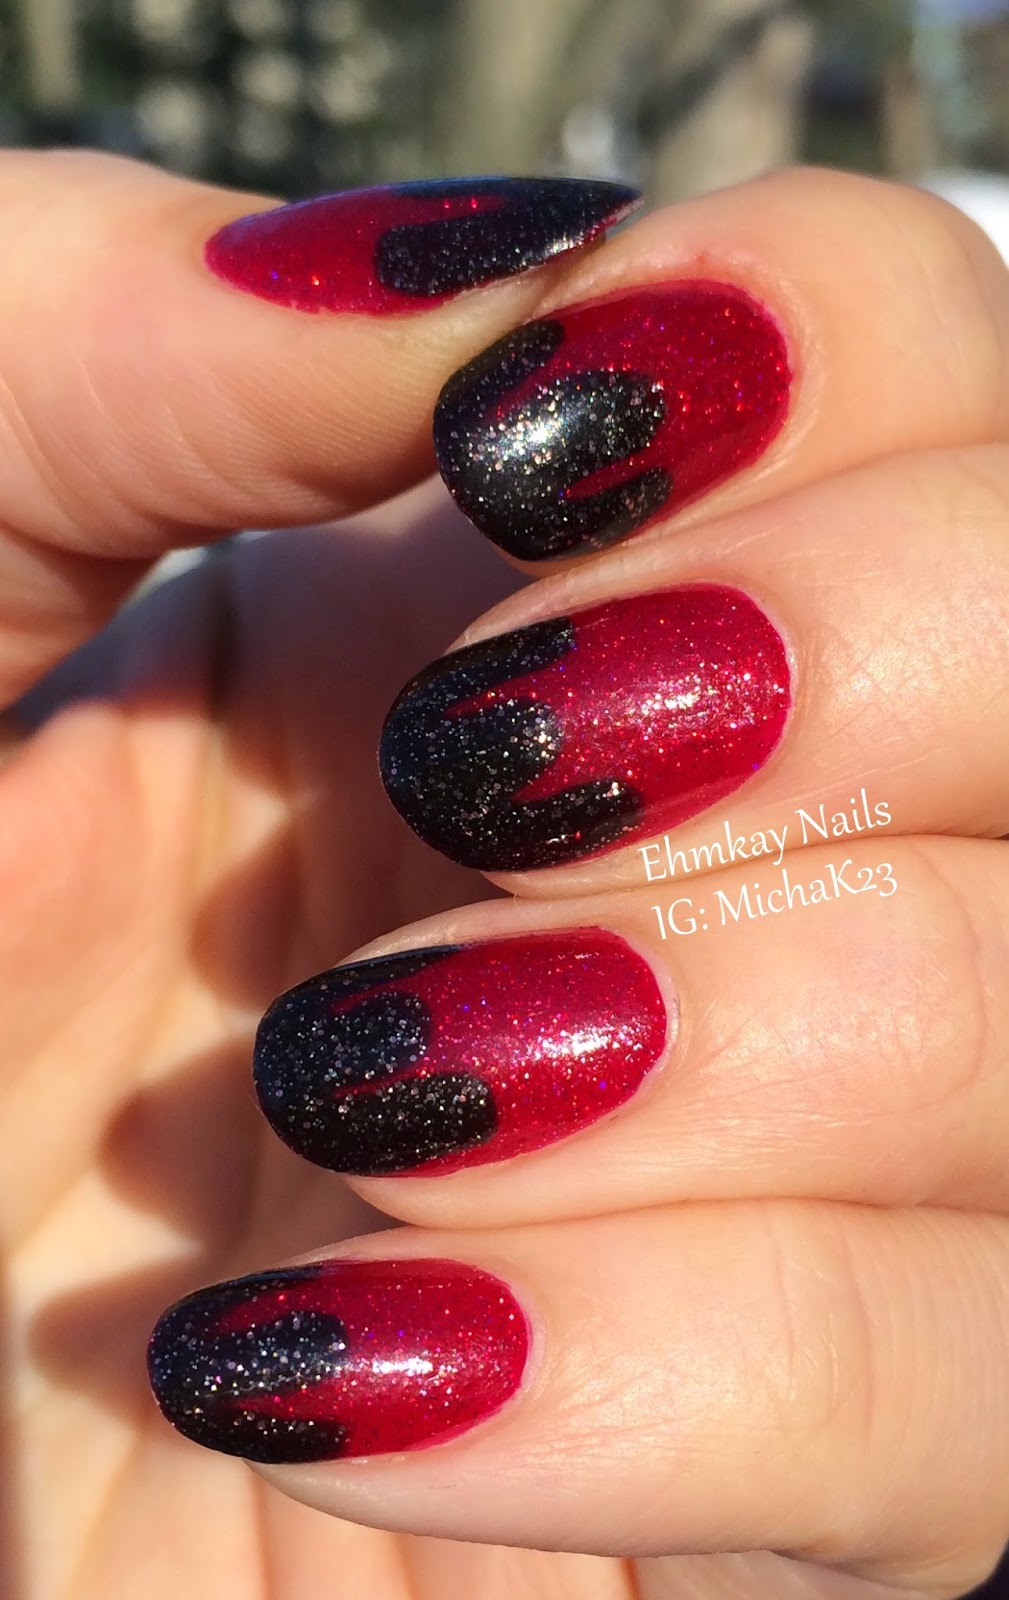 Ehmkay Nails Happy New Year S Eve Nail Art Stamping: Ehmkay Nails: Chocolate Dipped Strawberries Nail Art With